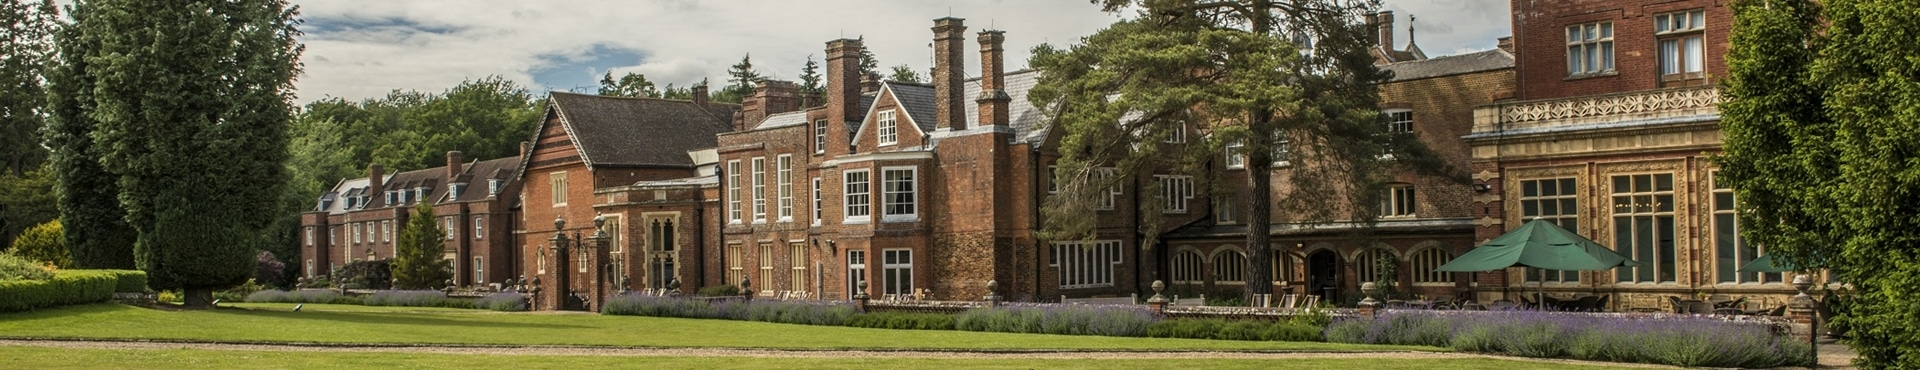 A landscape phot of an old manison house which is now a corporate away day venue.